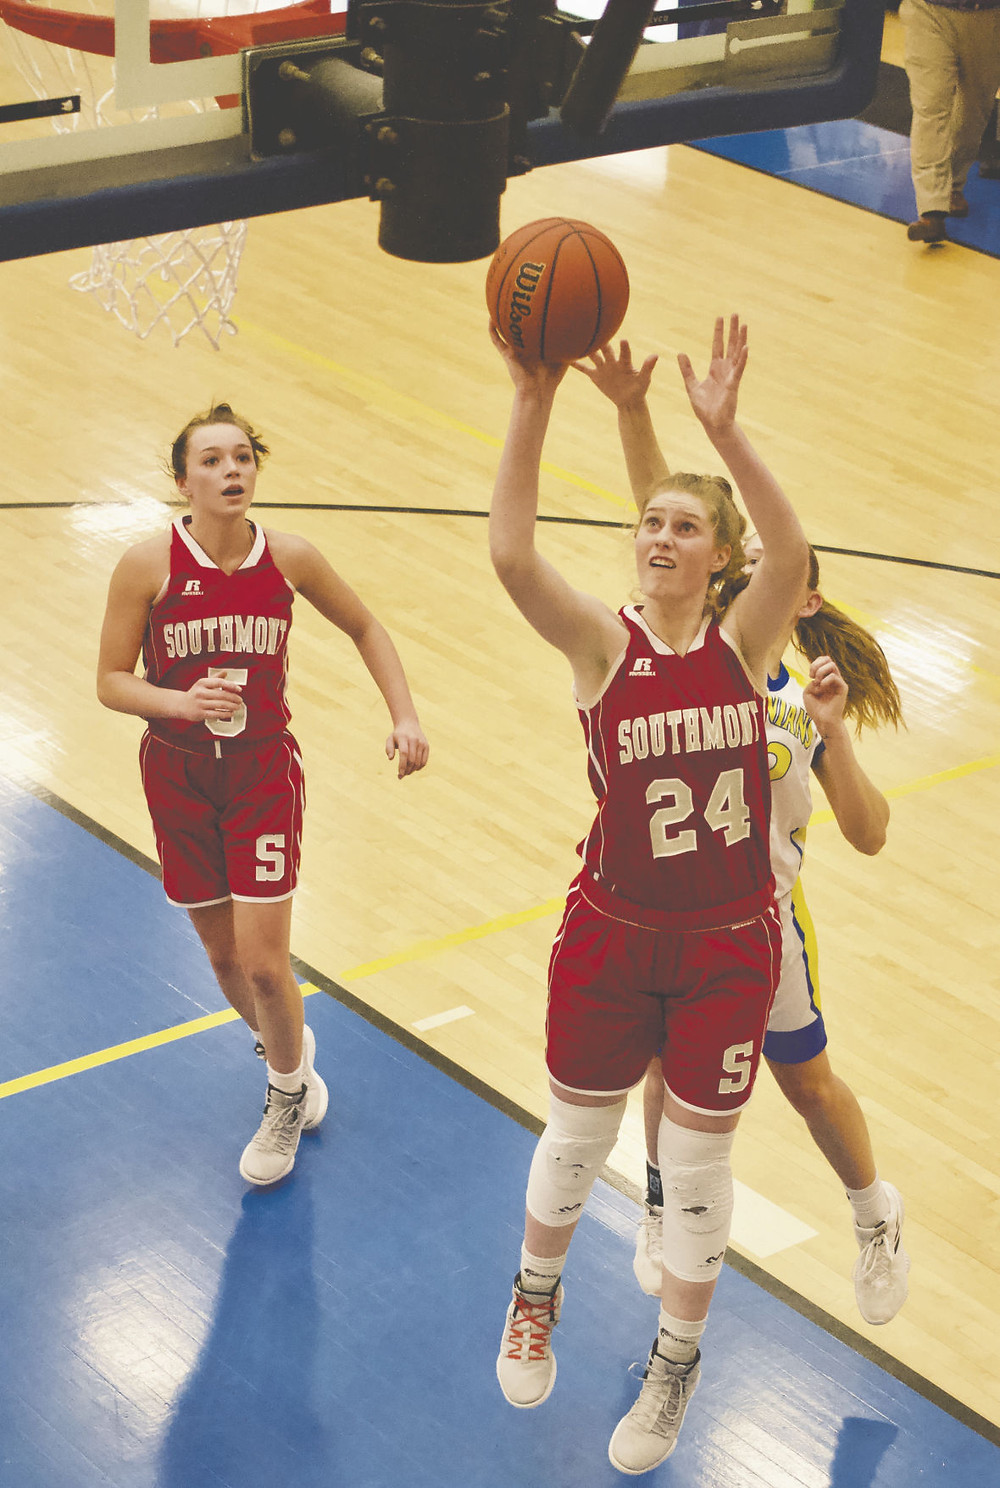 Belle Miller scored 12 points in the Mounties' win over Crawfordsville.